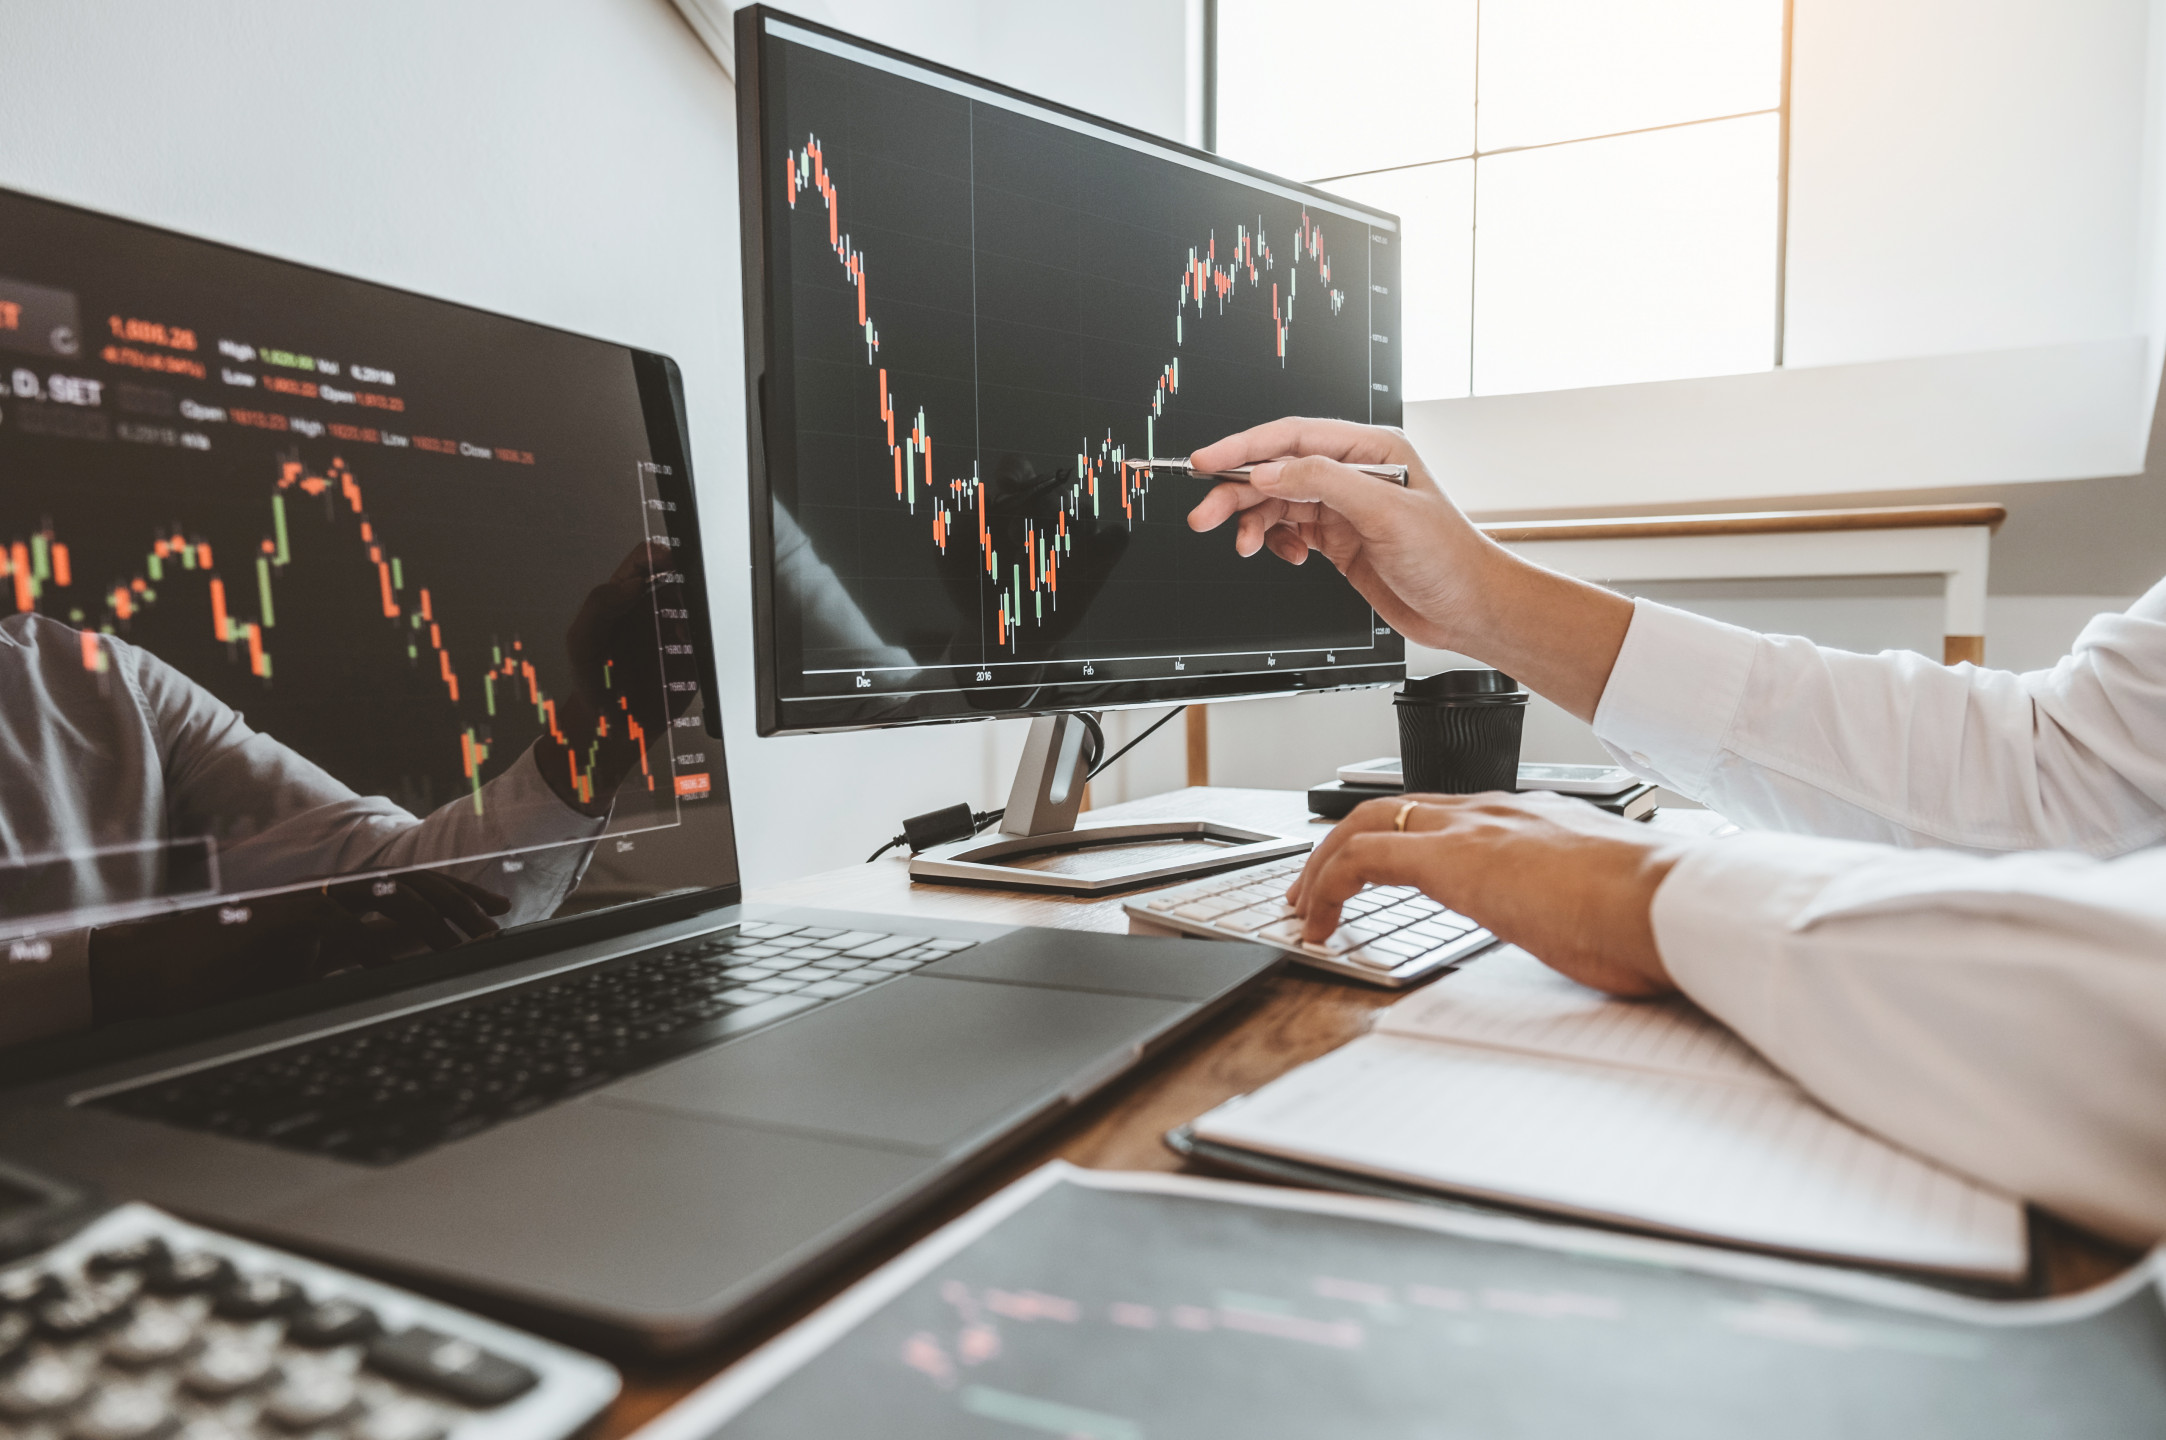 How does this business of currency trading work?